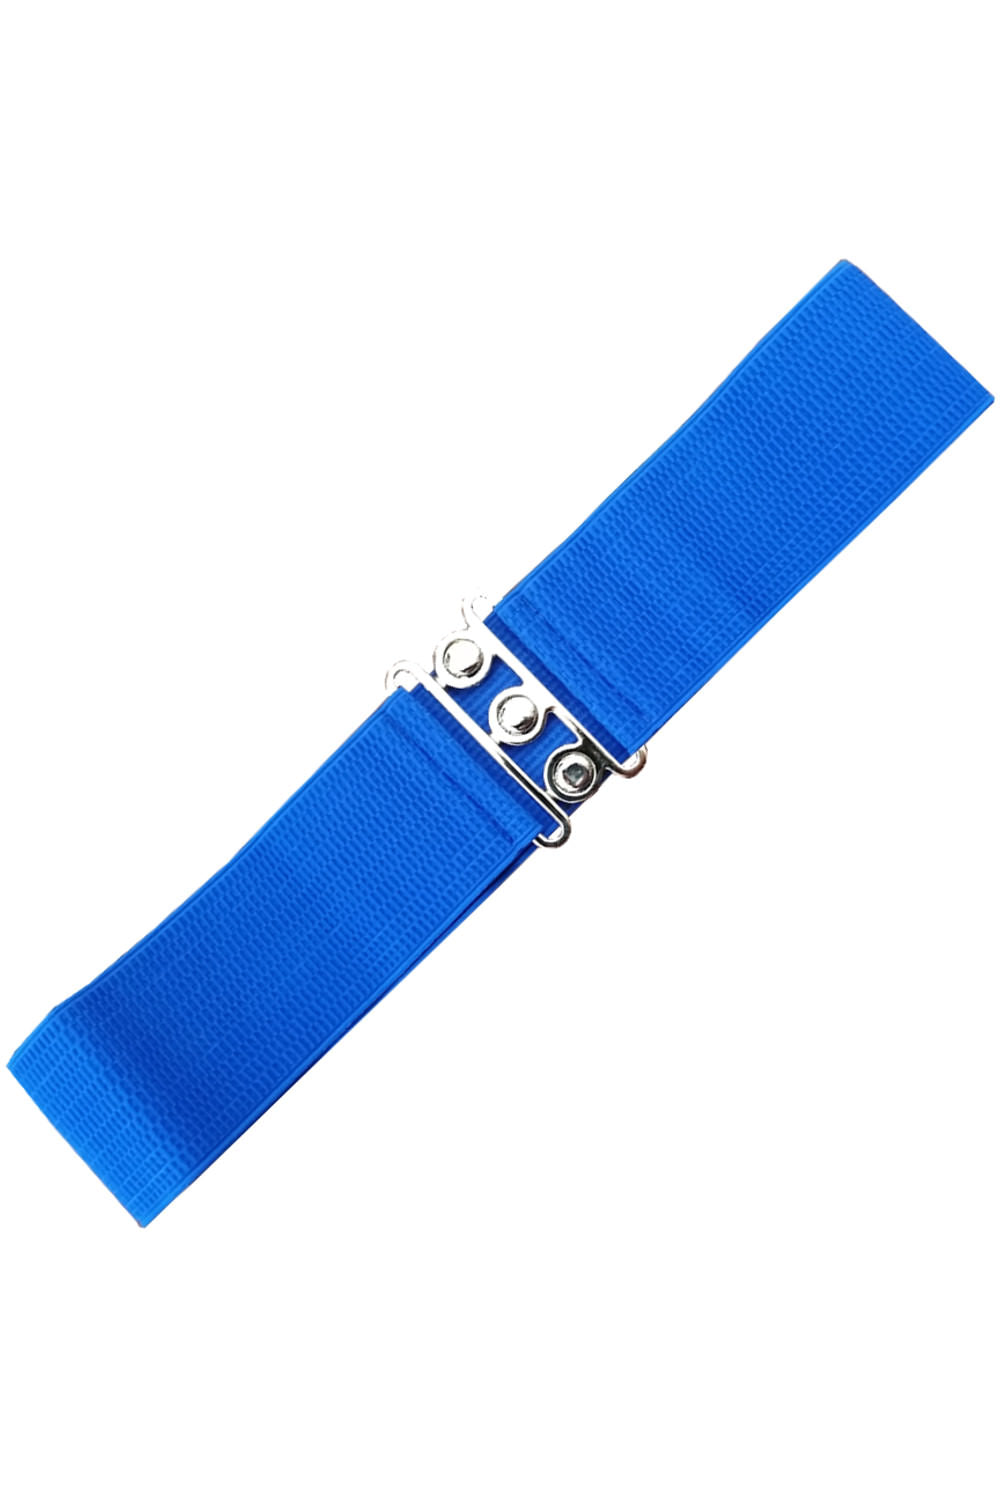 Dancing Days Retro Elasticated 1950s Waspie Belt In Royal Blue; Dancing Days; Waspie Belt; Elasticated Belt; 1950s Style; Royal Blue